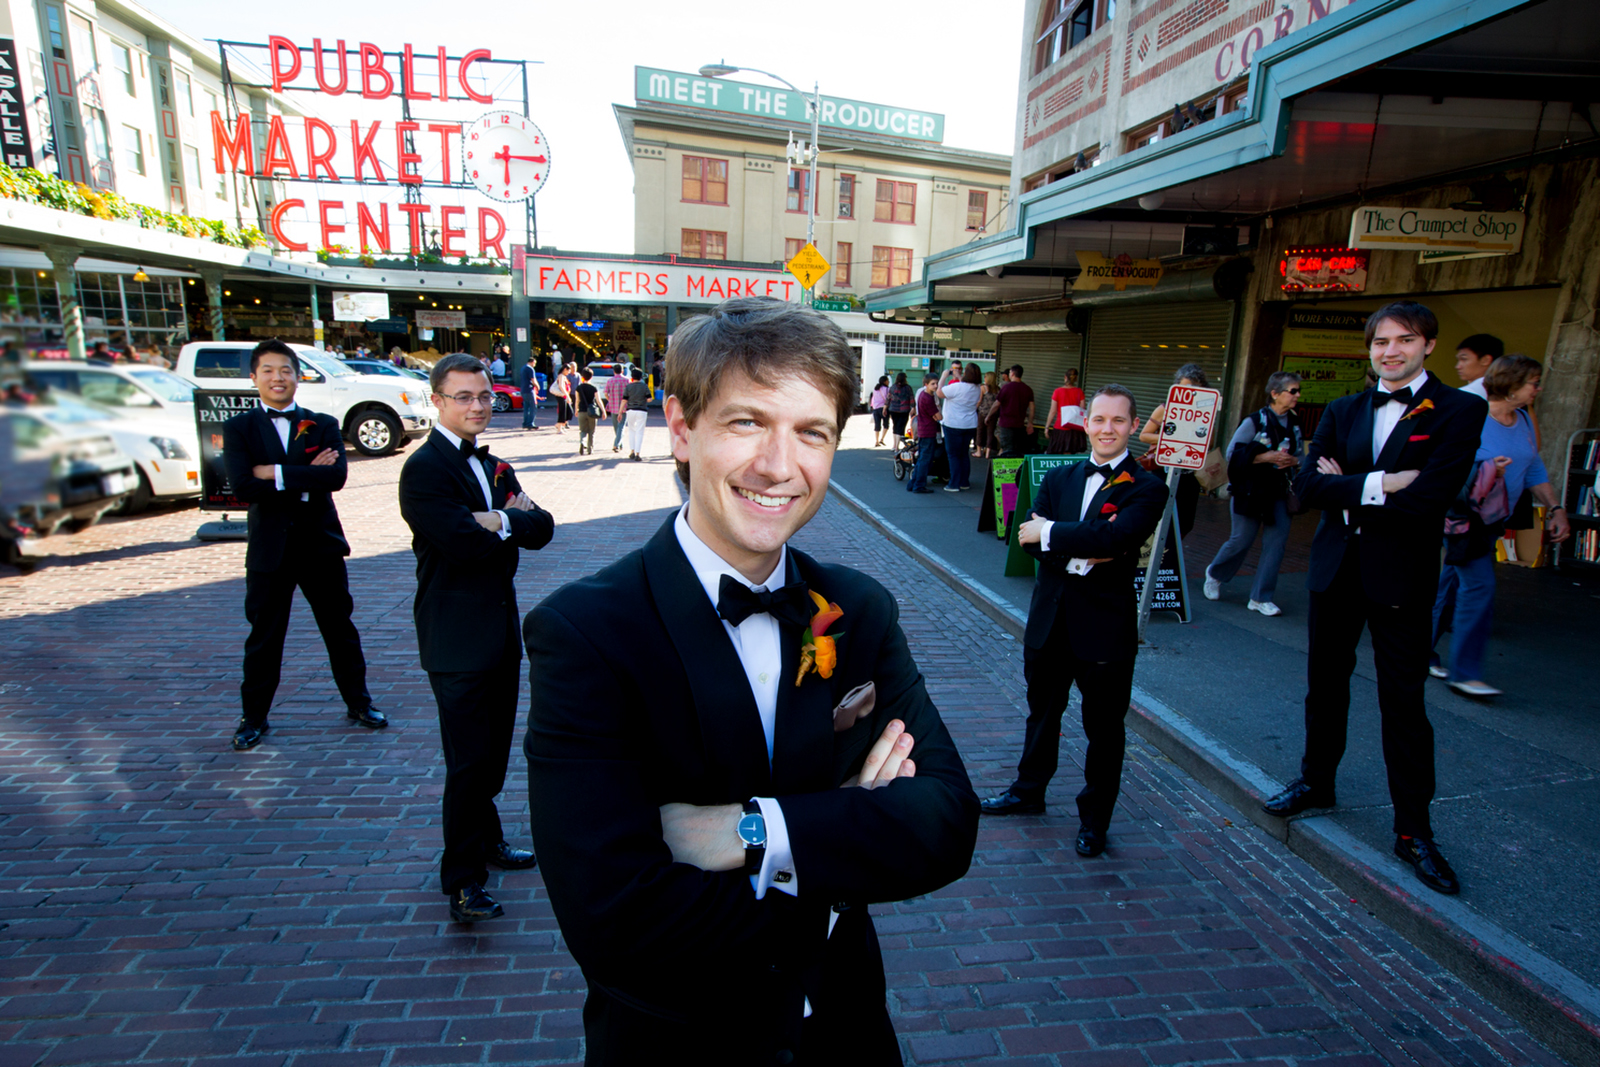 The groom and his groomsmen pose for a portrait at the Pike Place Market prior to the wedding at the Seattle Aquarium. (Wedding Photography by Scott Eklund - Red Box Pictures)